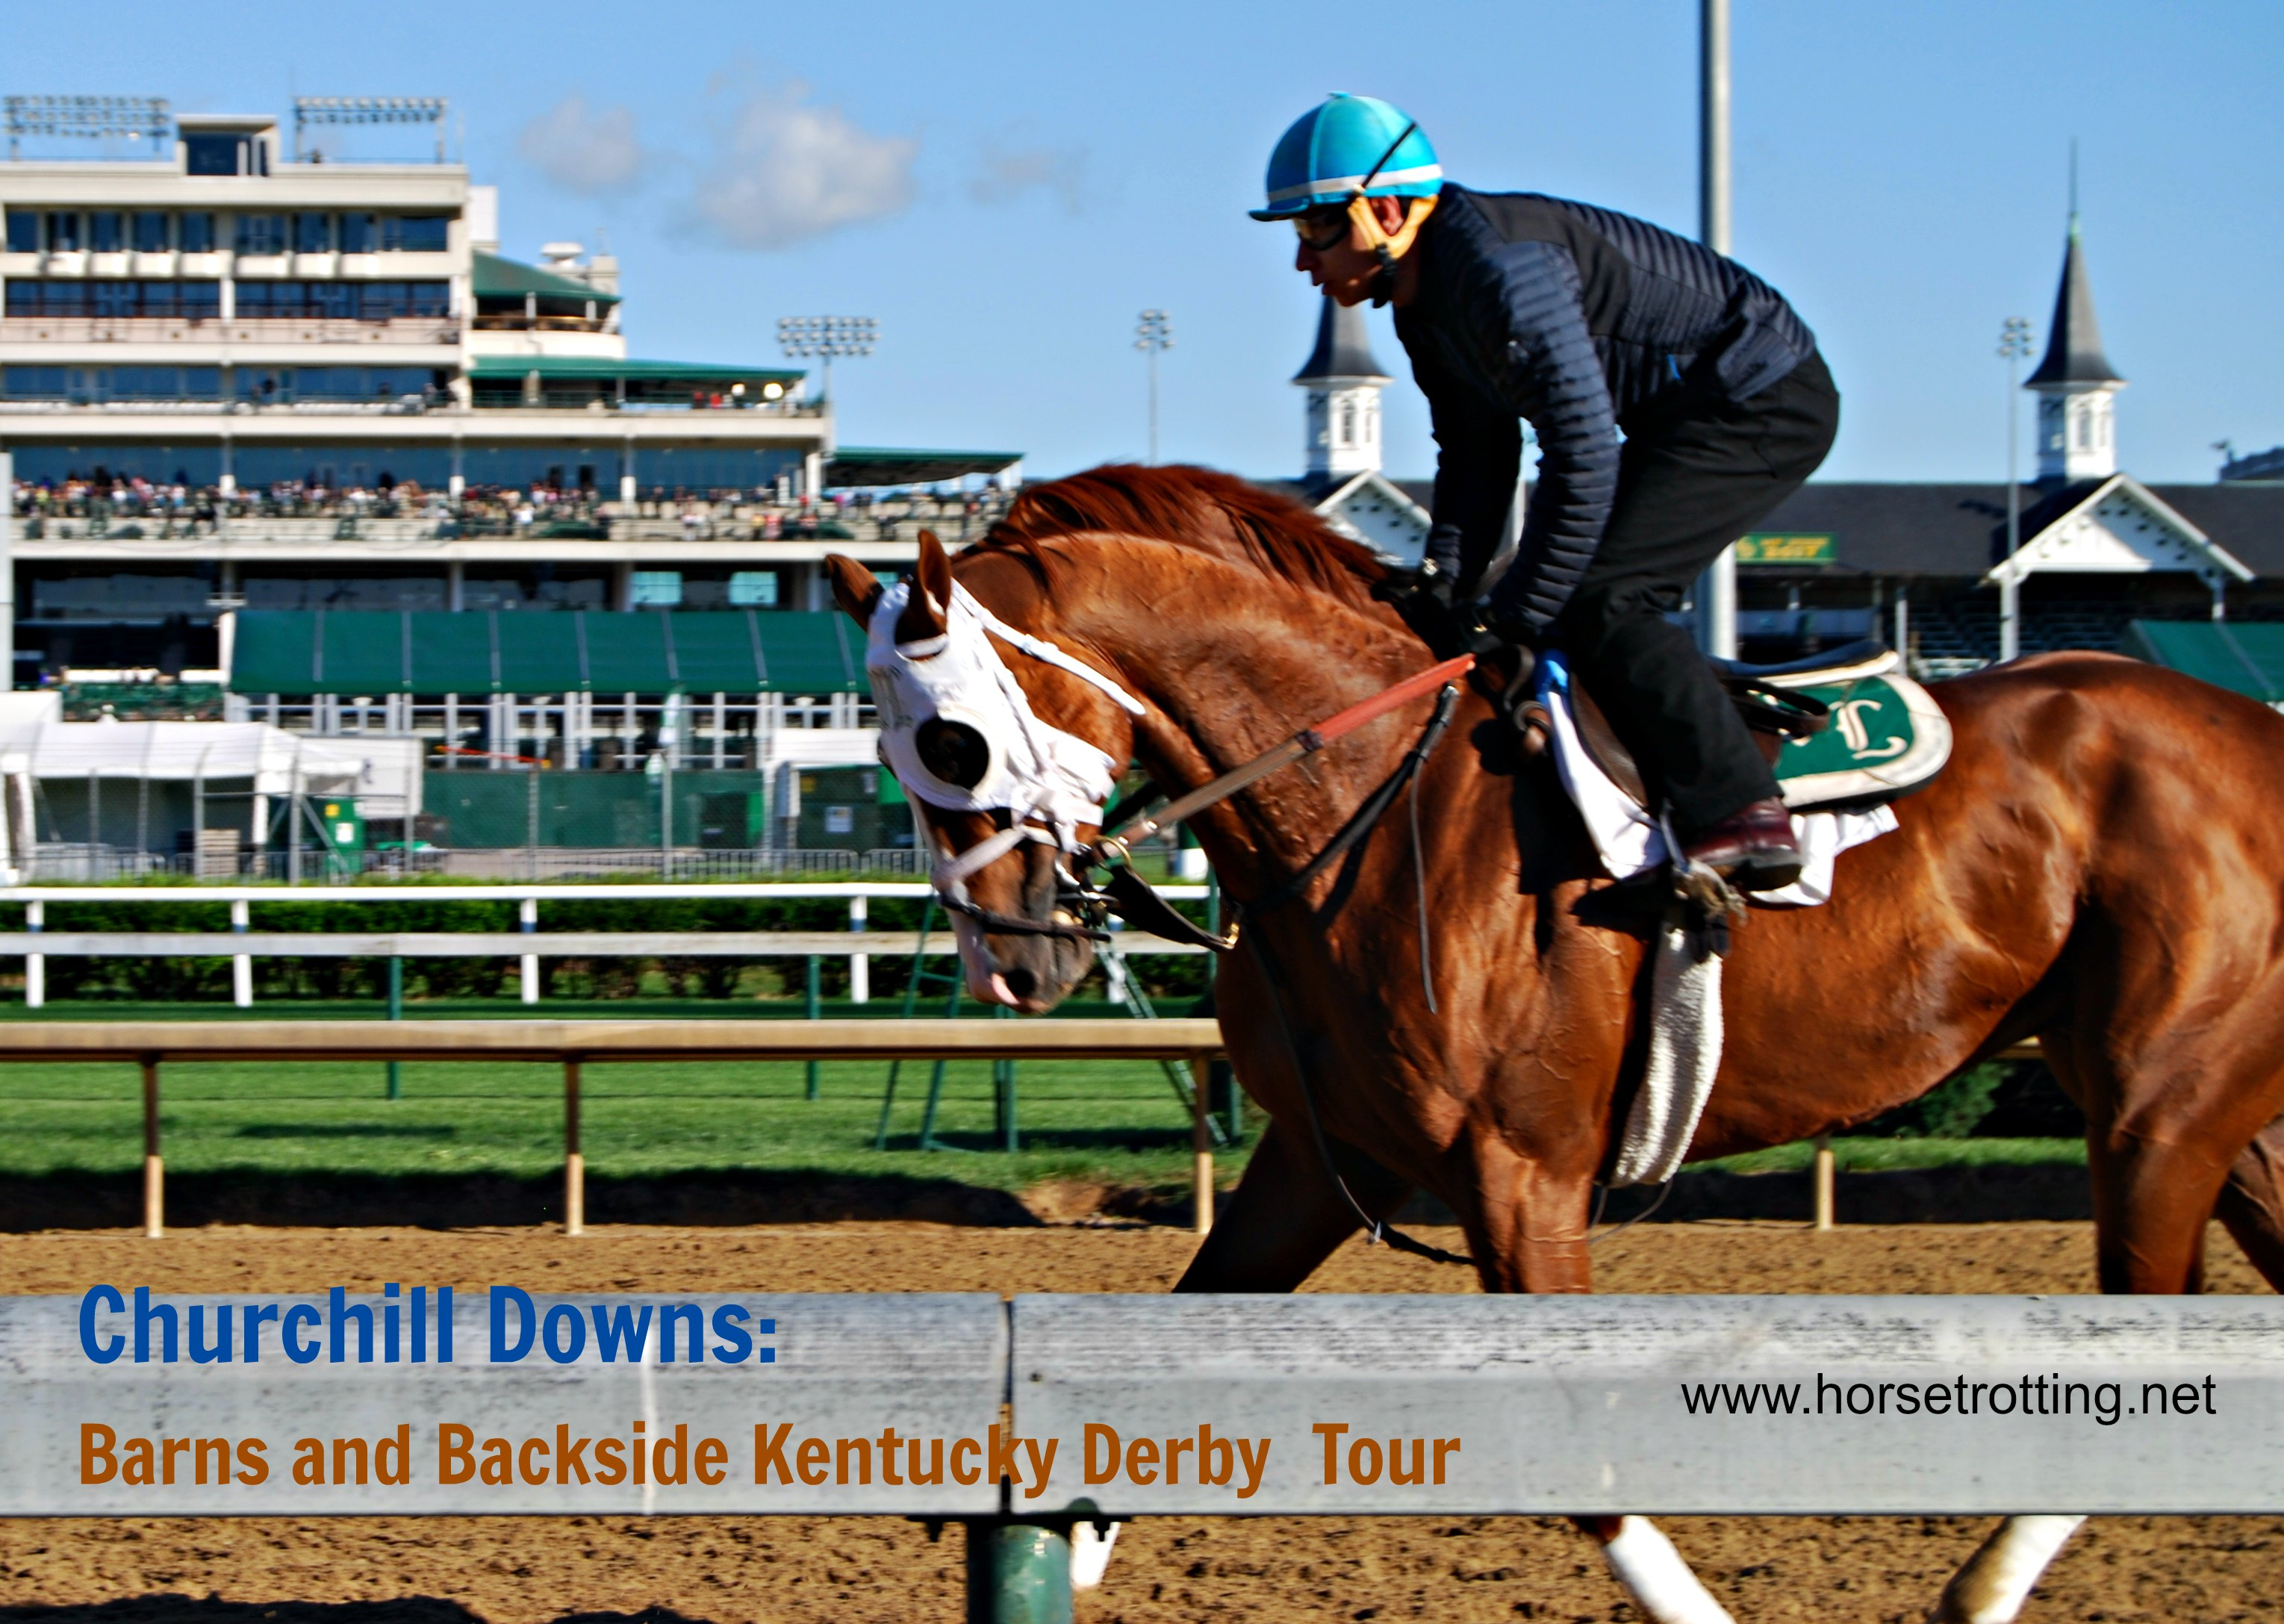 Travel Louisville, KY: Barns and Backside Tour Electric During Derby Week